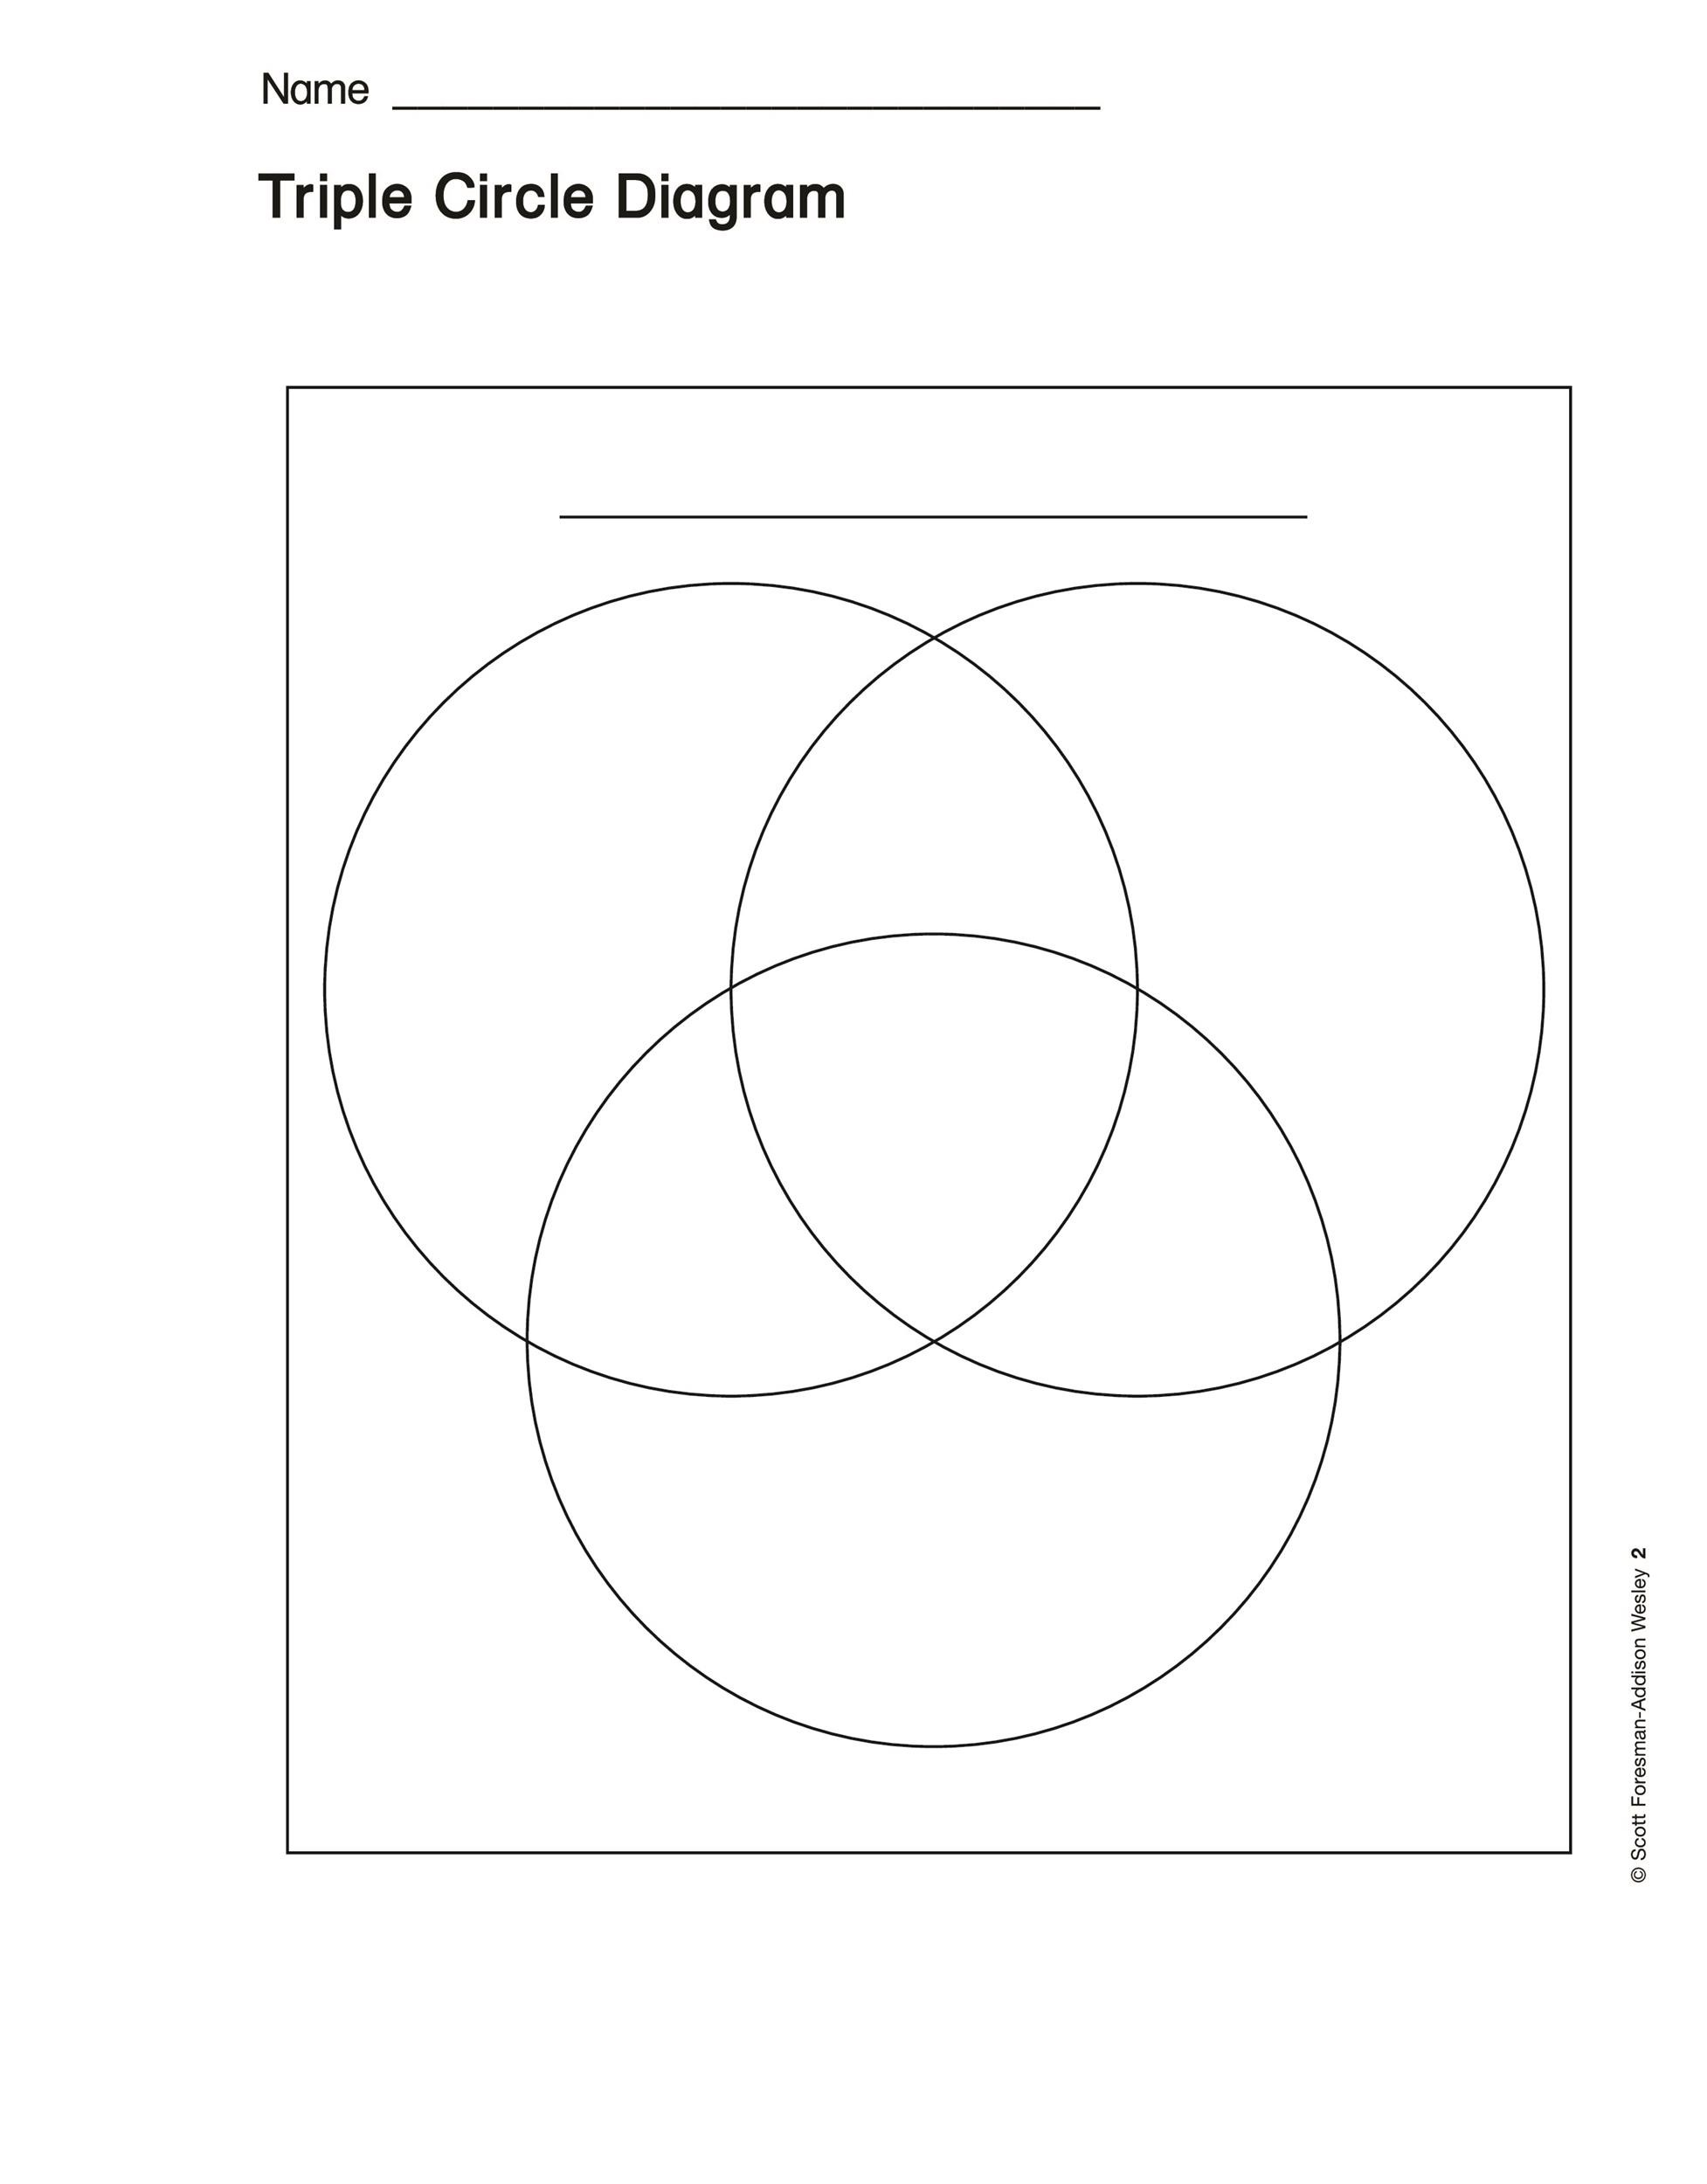 photo regarding Printable Venn Diagrams With Lines called Blank Venn Diagram Towards Print - Wiring Diagram Listing